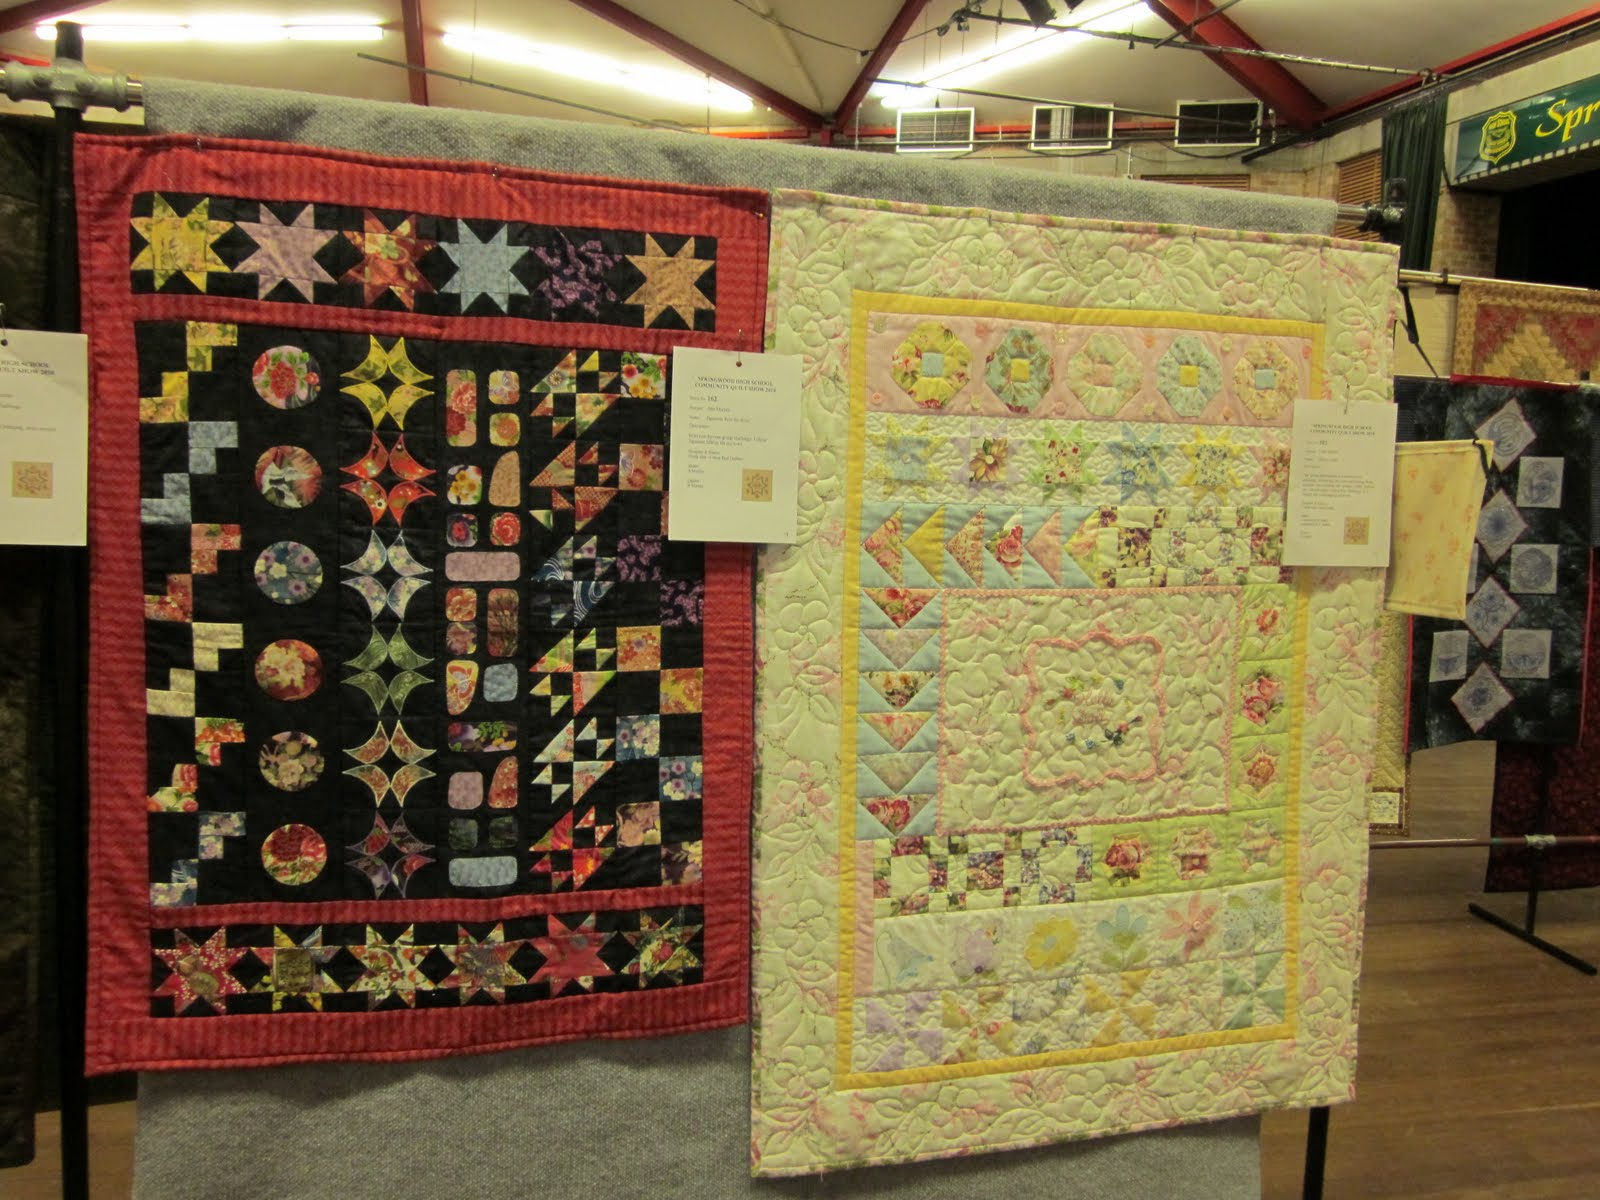 Beautiful Hanging A Quilt On The Wall Ideas Photos - Wall Art Ideas ...